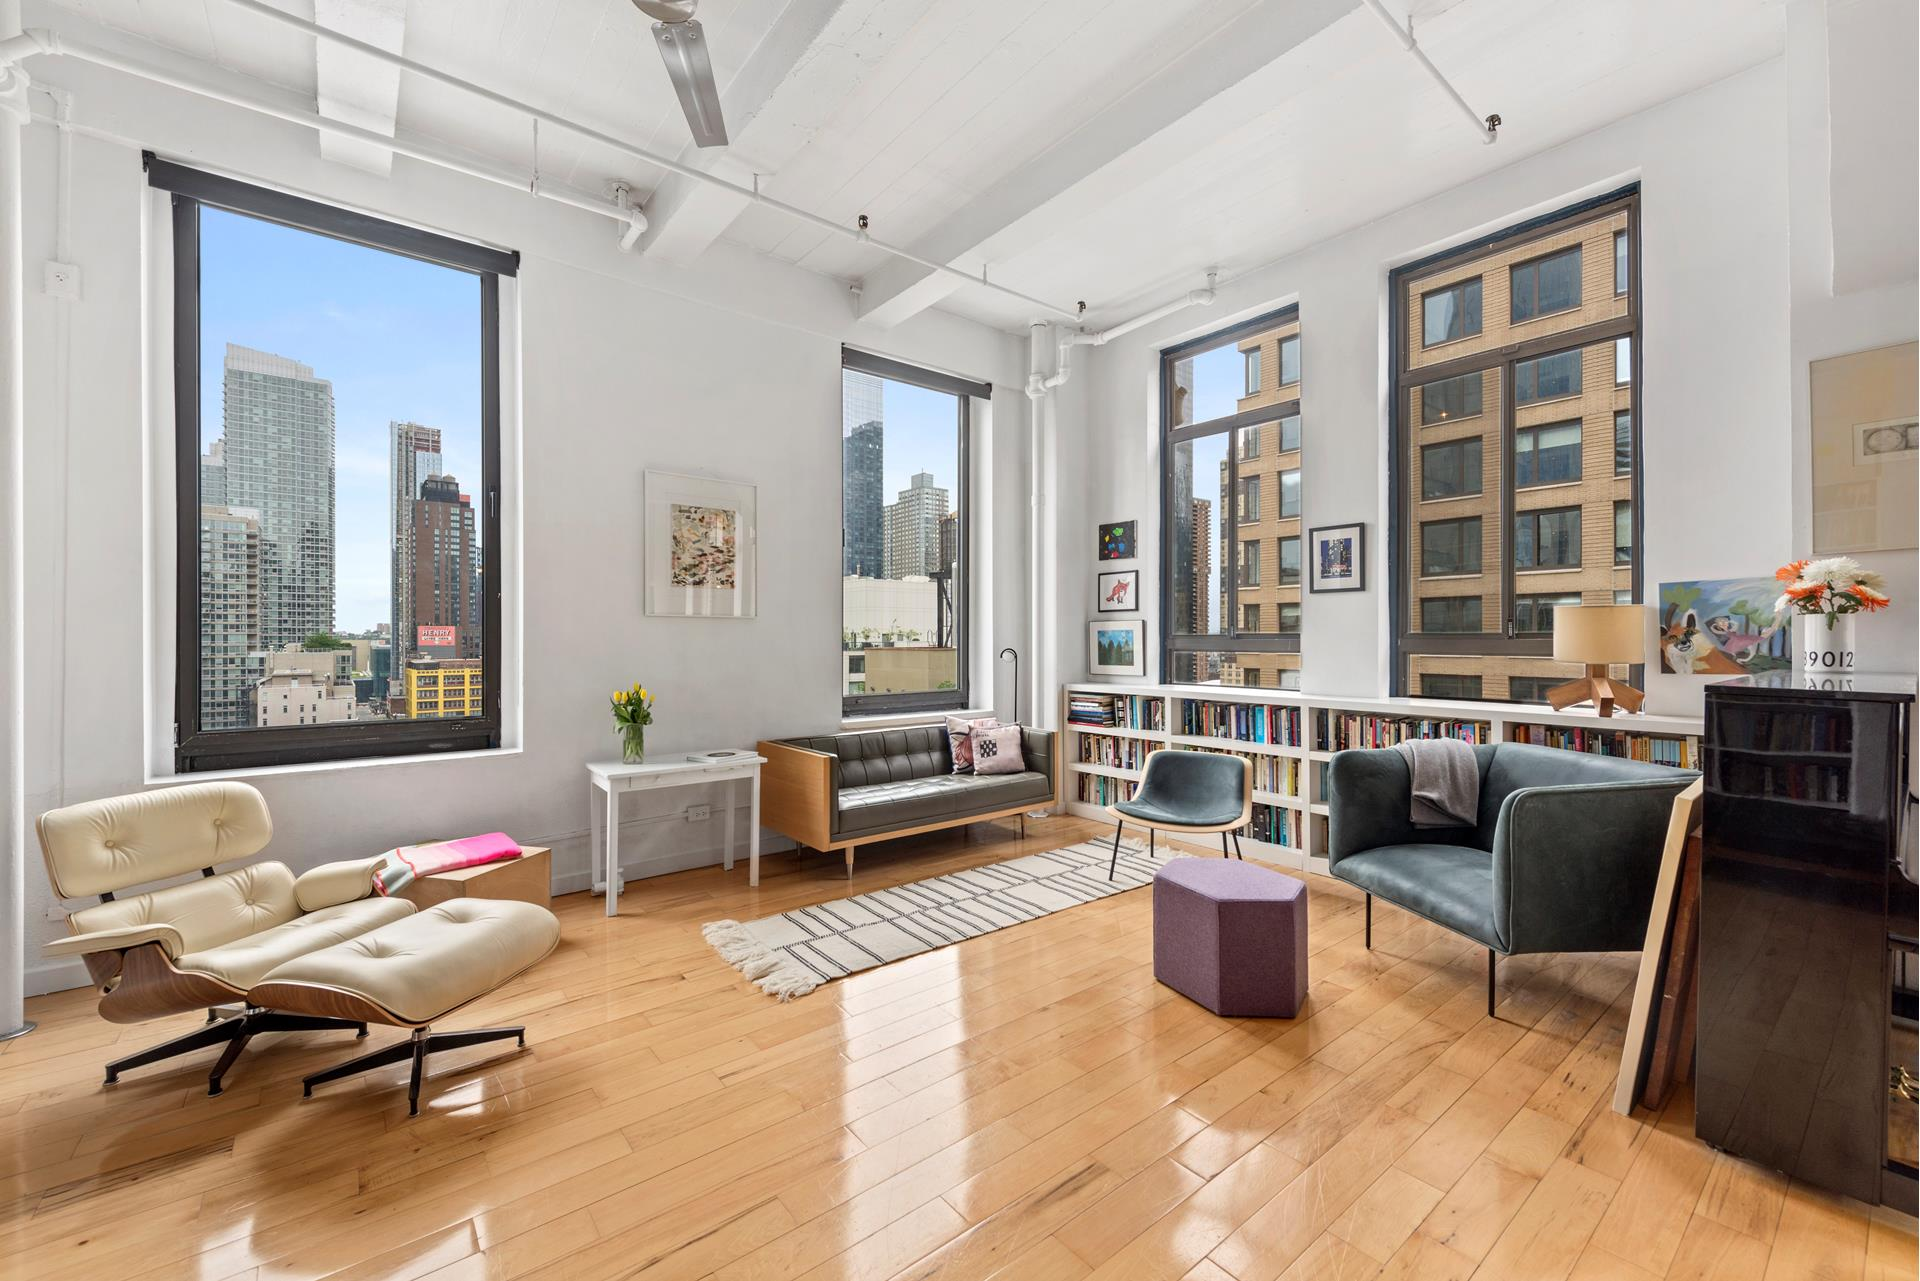 SUNNY HUDSON YARDS LOFT!       Spacious, light-flooded loft with spectacular river views in the heart of a booming Manhattan neighborhood. This apartment features soaring12 feet ceilings and 8 feet windows, oak floors,two   beautifully designed sleeping areas, and a charmingly informal kitchen with a Wolf oven and a Fisher-Paykel dishwasher. With its dramatic and expansive living space, this is a unit that must be seen to be appreciated. All of its details-the ships   bunks, the large storage attic, the custom shelving, the underbed cargo spaces-combine to create an extraordinary spatial efficiency and luxury.    This unique property is the 10th-floor corner unit of an elegant 1915 building on the western fringe of the Garment District. It offers an exceptional opportunity to live a dream New York lifestyle in a creative, thriving neighborhood filled with dance venues,   recording studios, theatres, coffee shops and restaurants. The apartment is perfect for entertaining, domestic tranquility, and creative inspiration. Hudson Yards, the High Line, the new Hudson Boulevard greenway, the Baryshnikov Arts Center-these and many   other diversions are within strolling distance. Shop locally at Brooklyn Fare, Esposito Meat Market, Ninth Avenue International Foods, Gotham West Market, and any number of beloved family-owned businesses.    Enjoy stunning views of the sun setting over the Hudson River. The co-op occupies the seven uppermost floors of a former printing press building. It has an Art Deco lobby, a key-locked elevator, intercom security, and two communal laundry rooms.  Pets are very welcome.   Pied a Terre allowed.  The building has excellent financials, there is NO underlying mortgage.  The co-op is under a proprietary Master Lease until December 31, 2179.